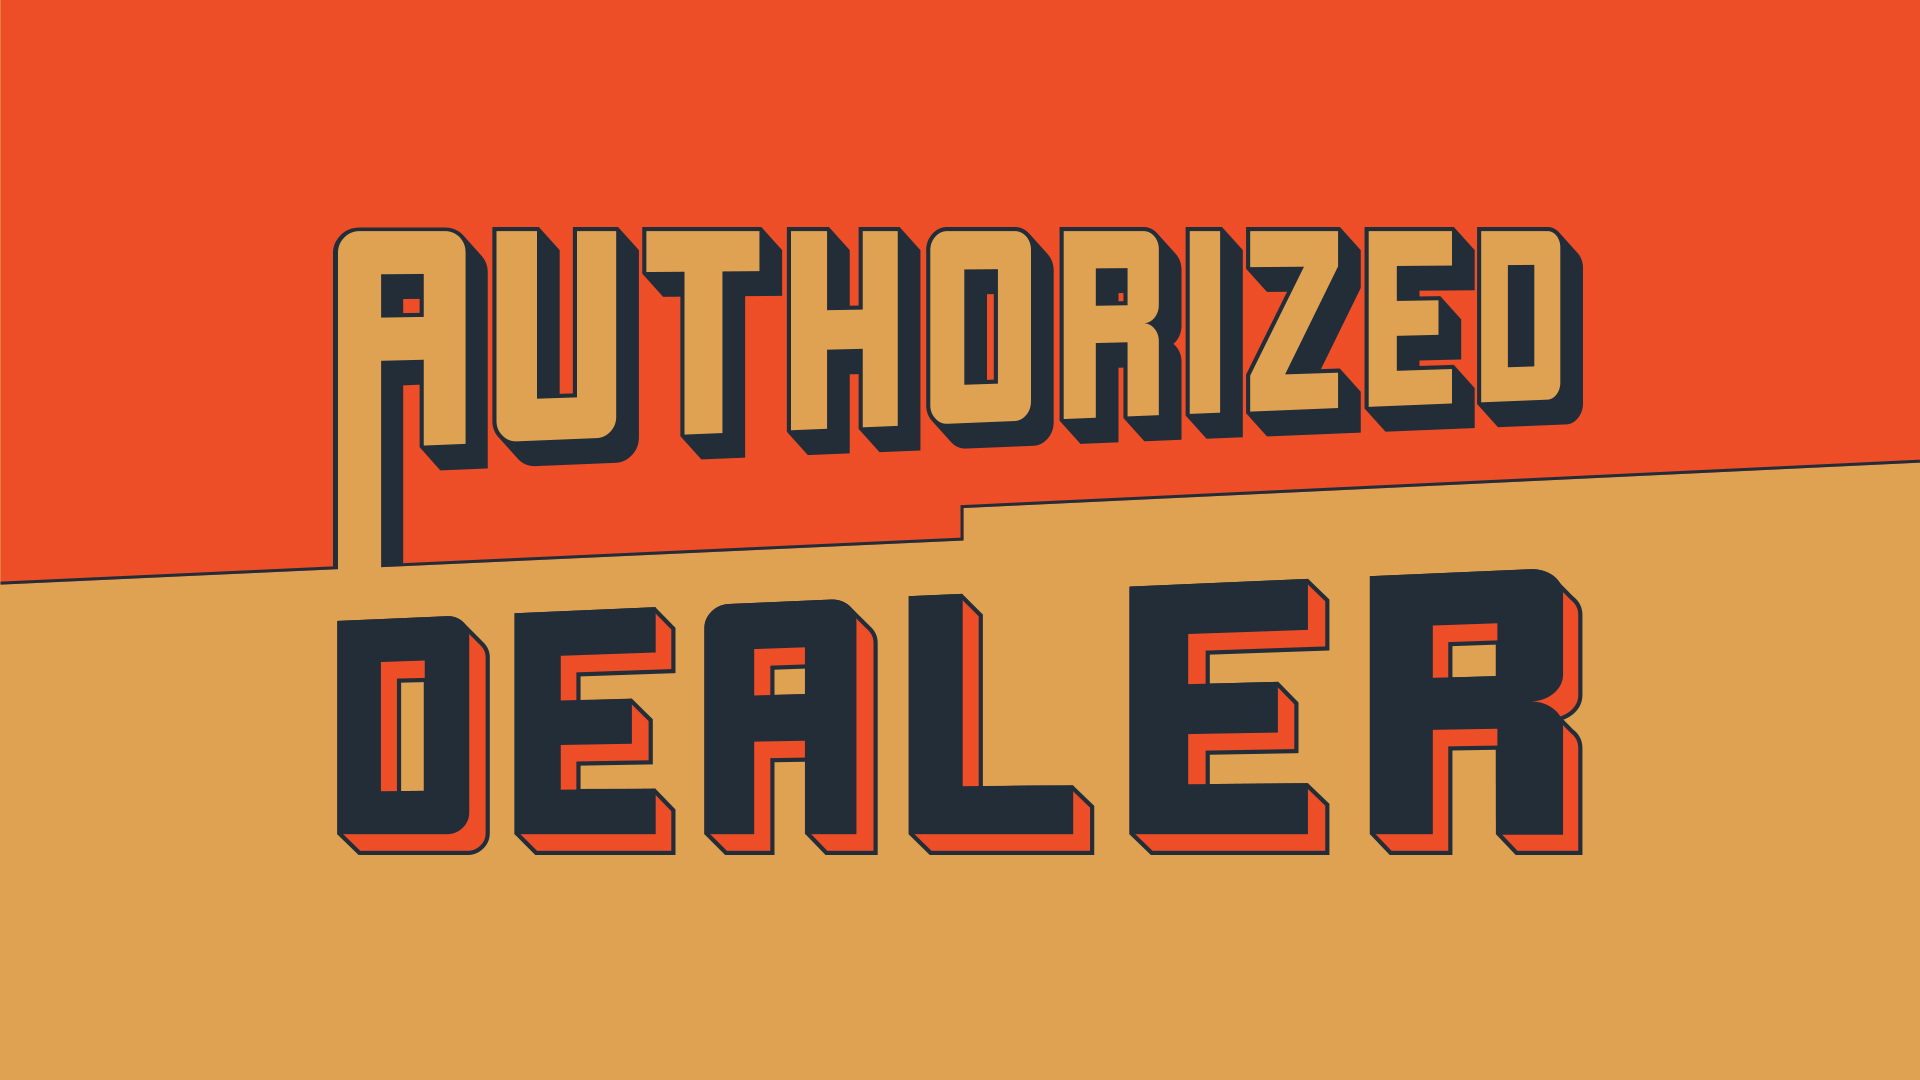 ABC_AuthorizedDealer